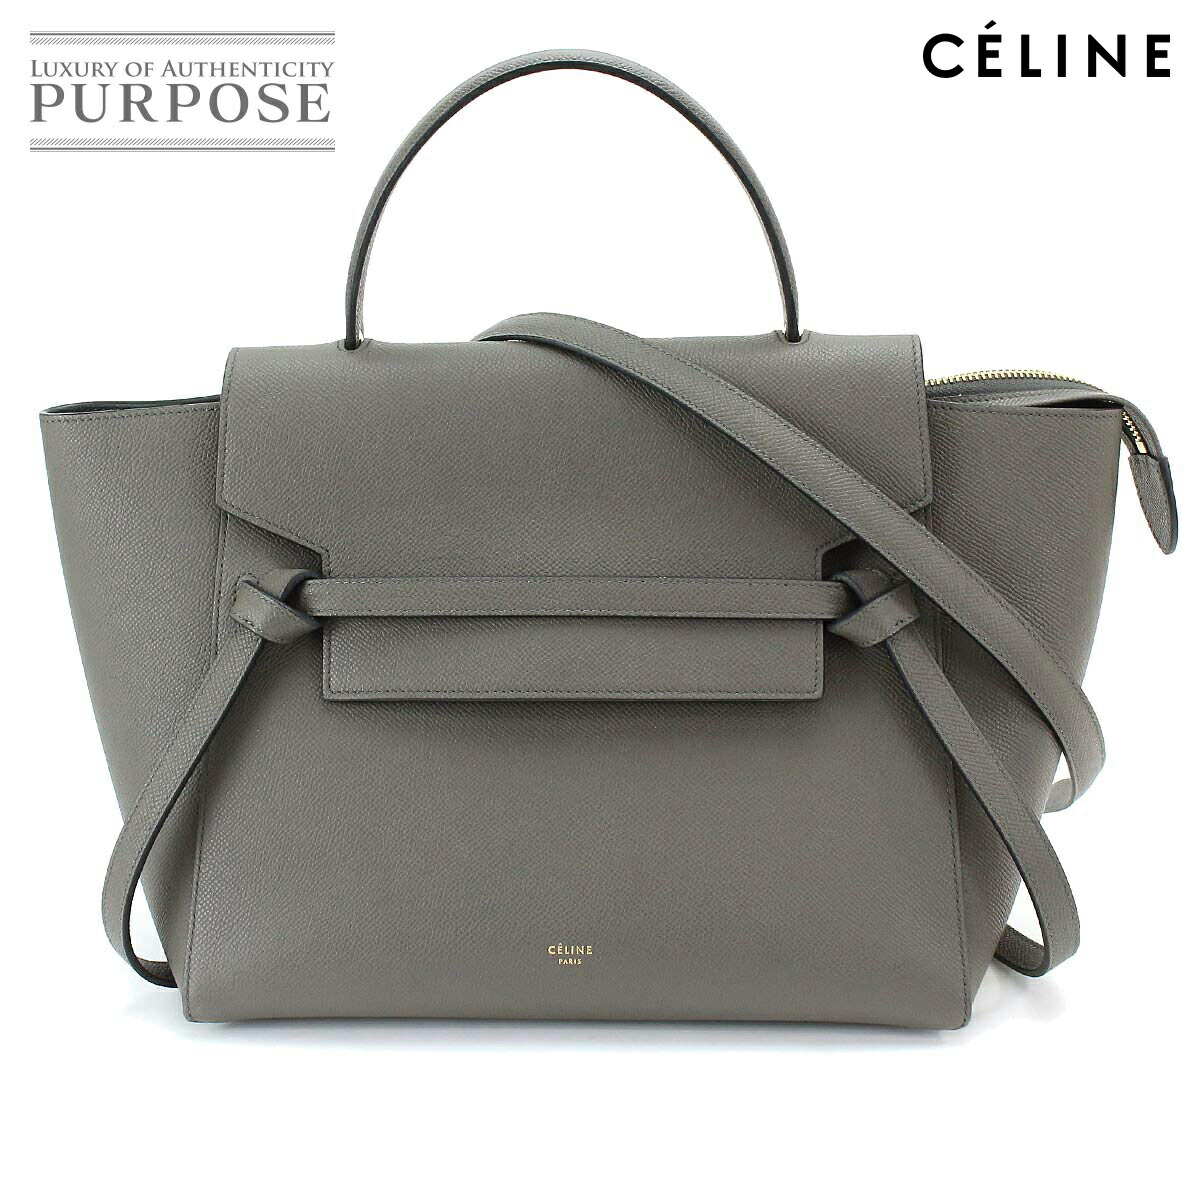 8ccd354b4f  unused display  Celine CELINE belt bag mini-2way hand shoulder bag leather  gray 189103  used  brand